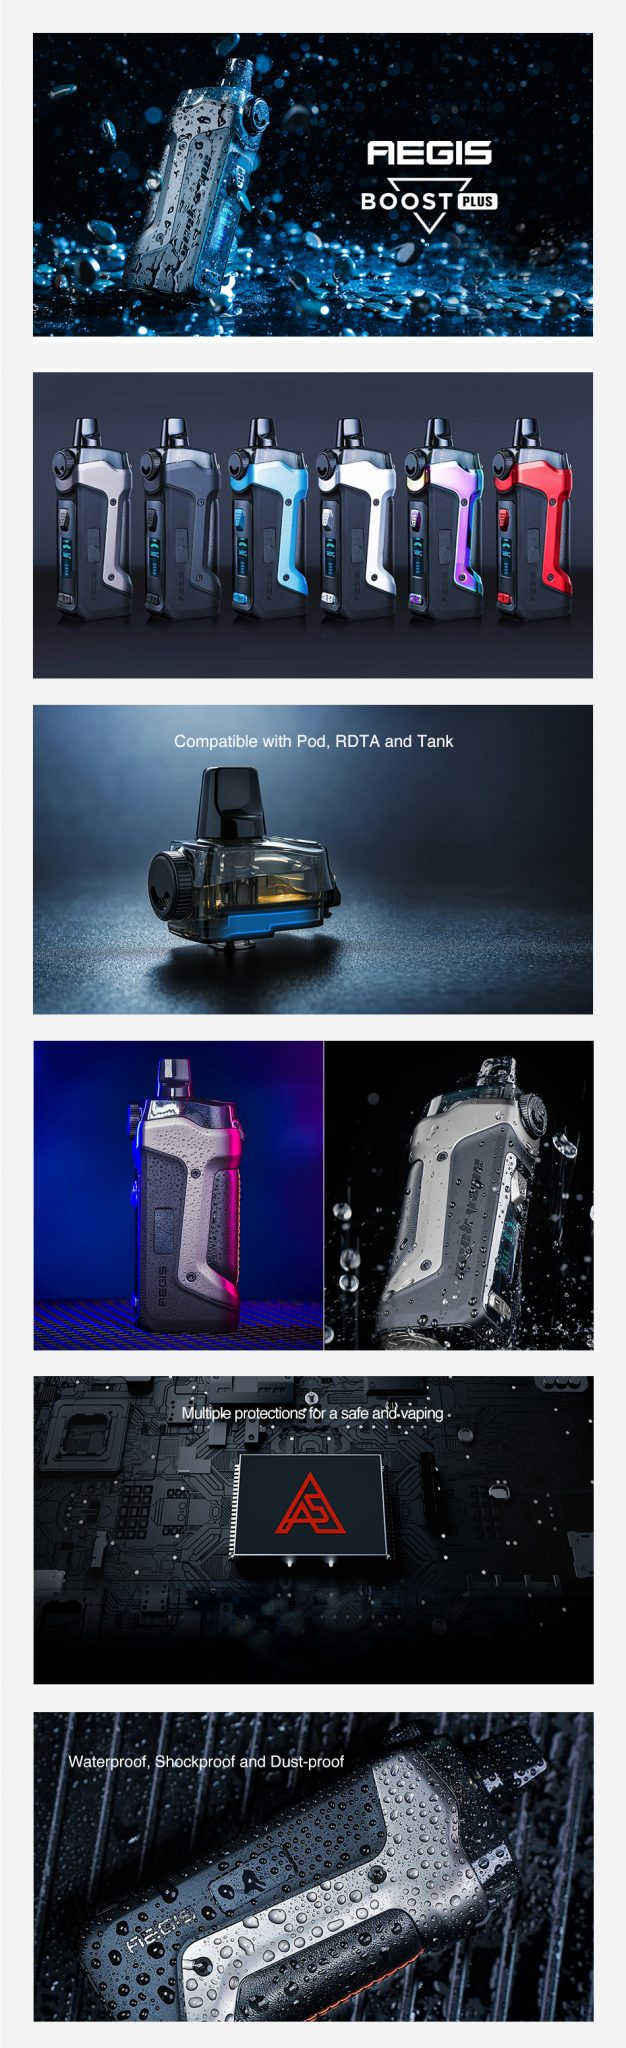 Geekvape-Aegis-Boost-Plus-40W-3-in-1-Pod-Kit-features